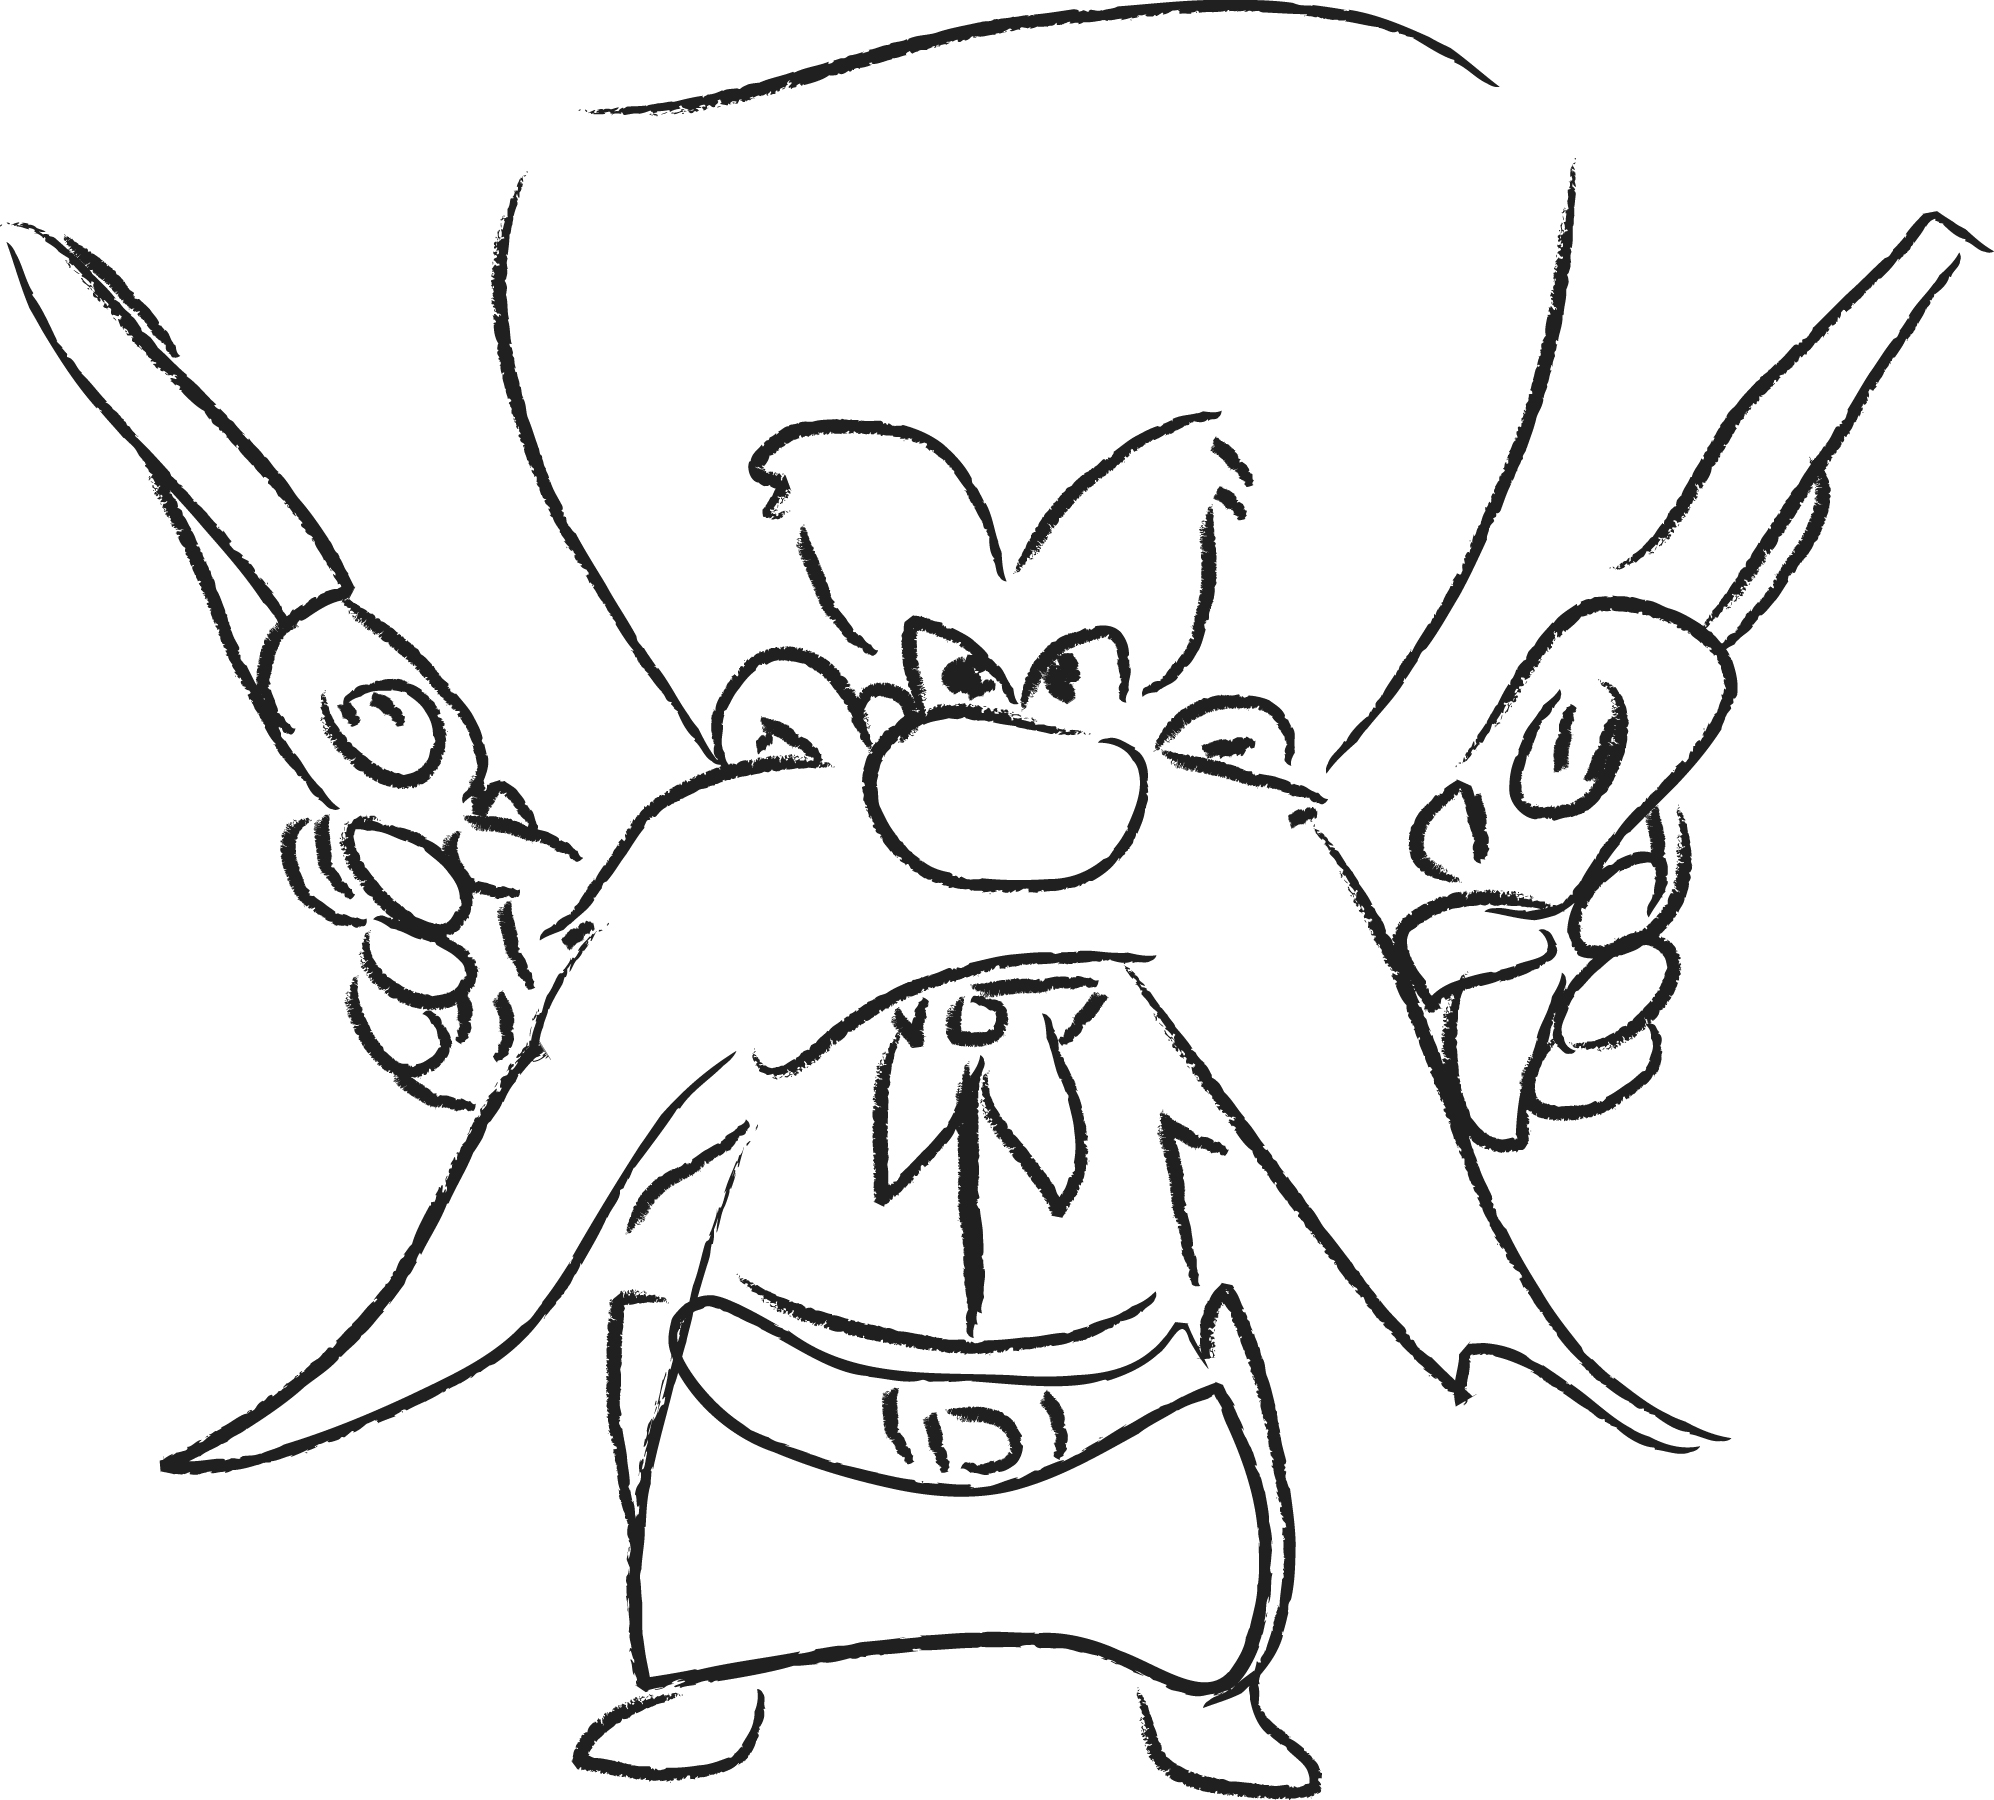 cartoon character drawing 1001 ideas and examples for what to draw when bored cartoon character drawing